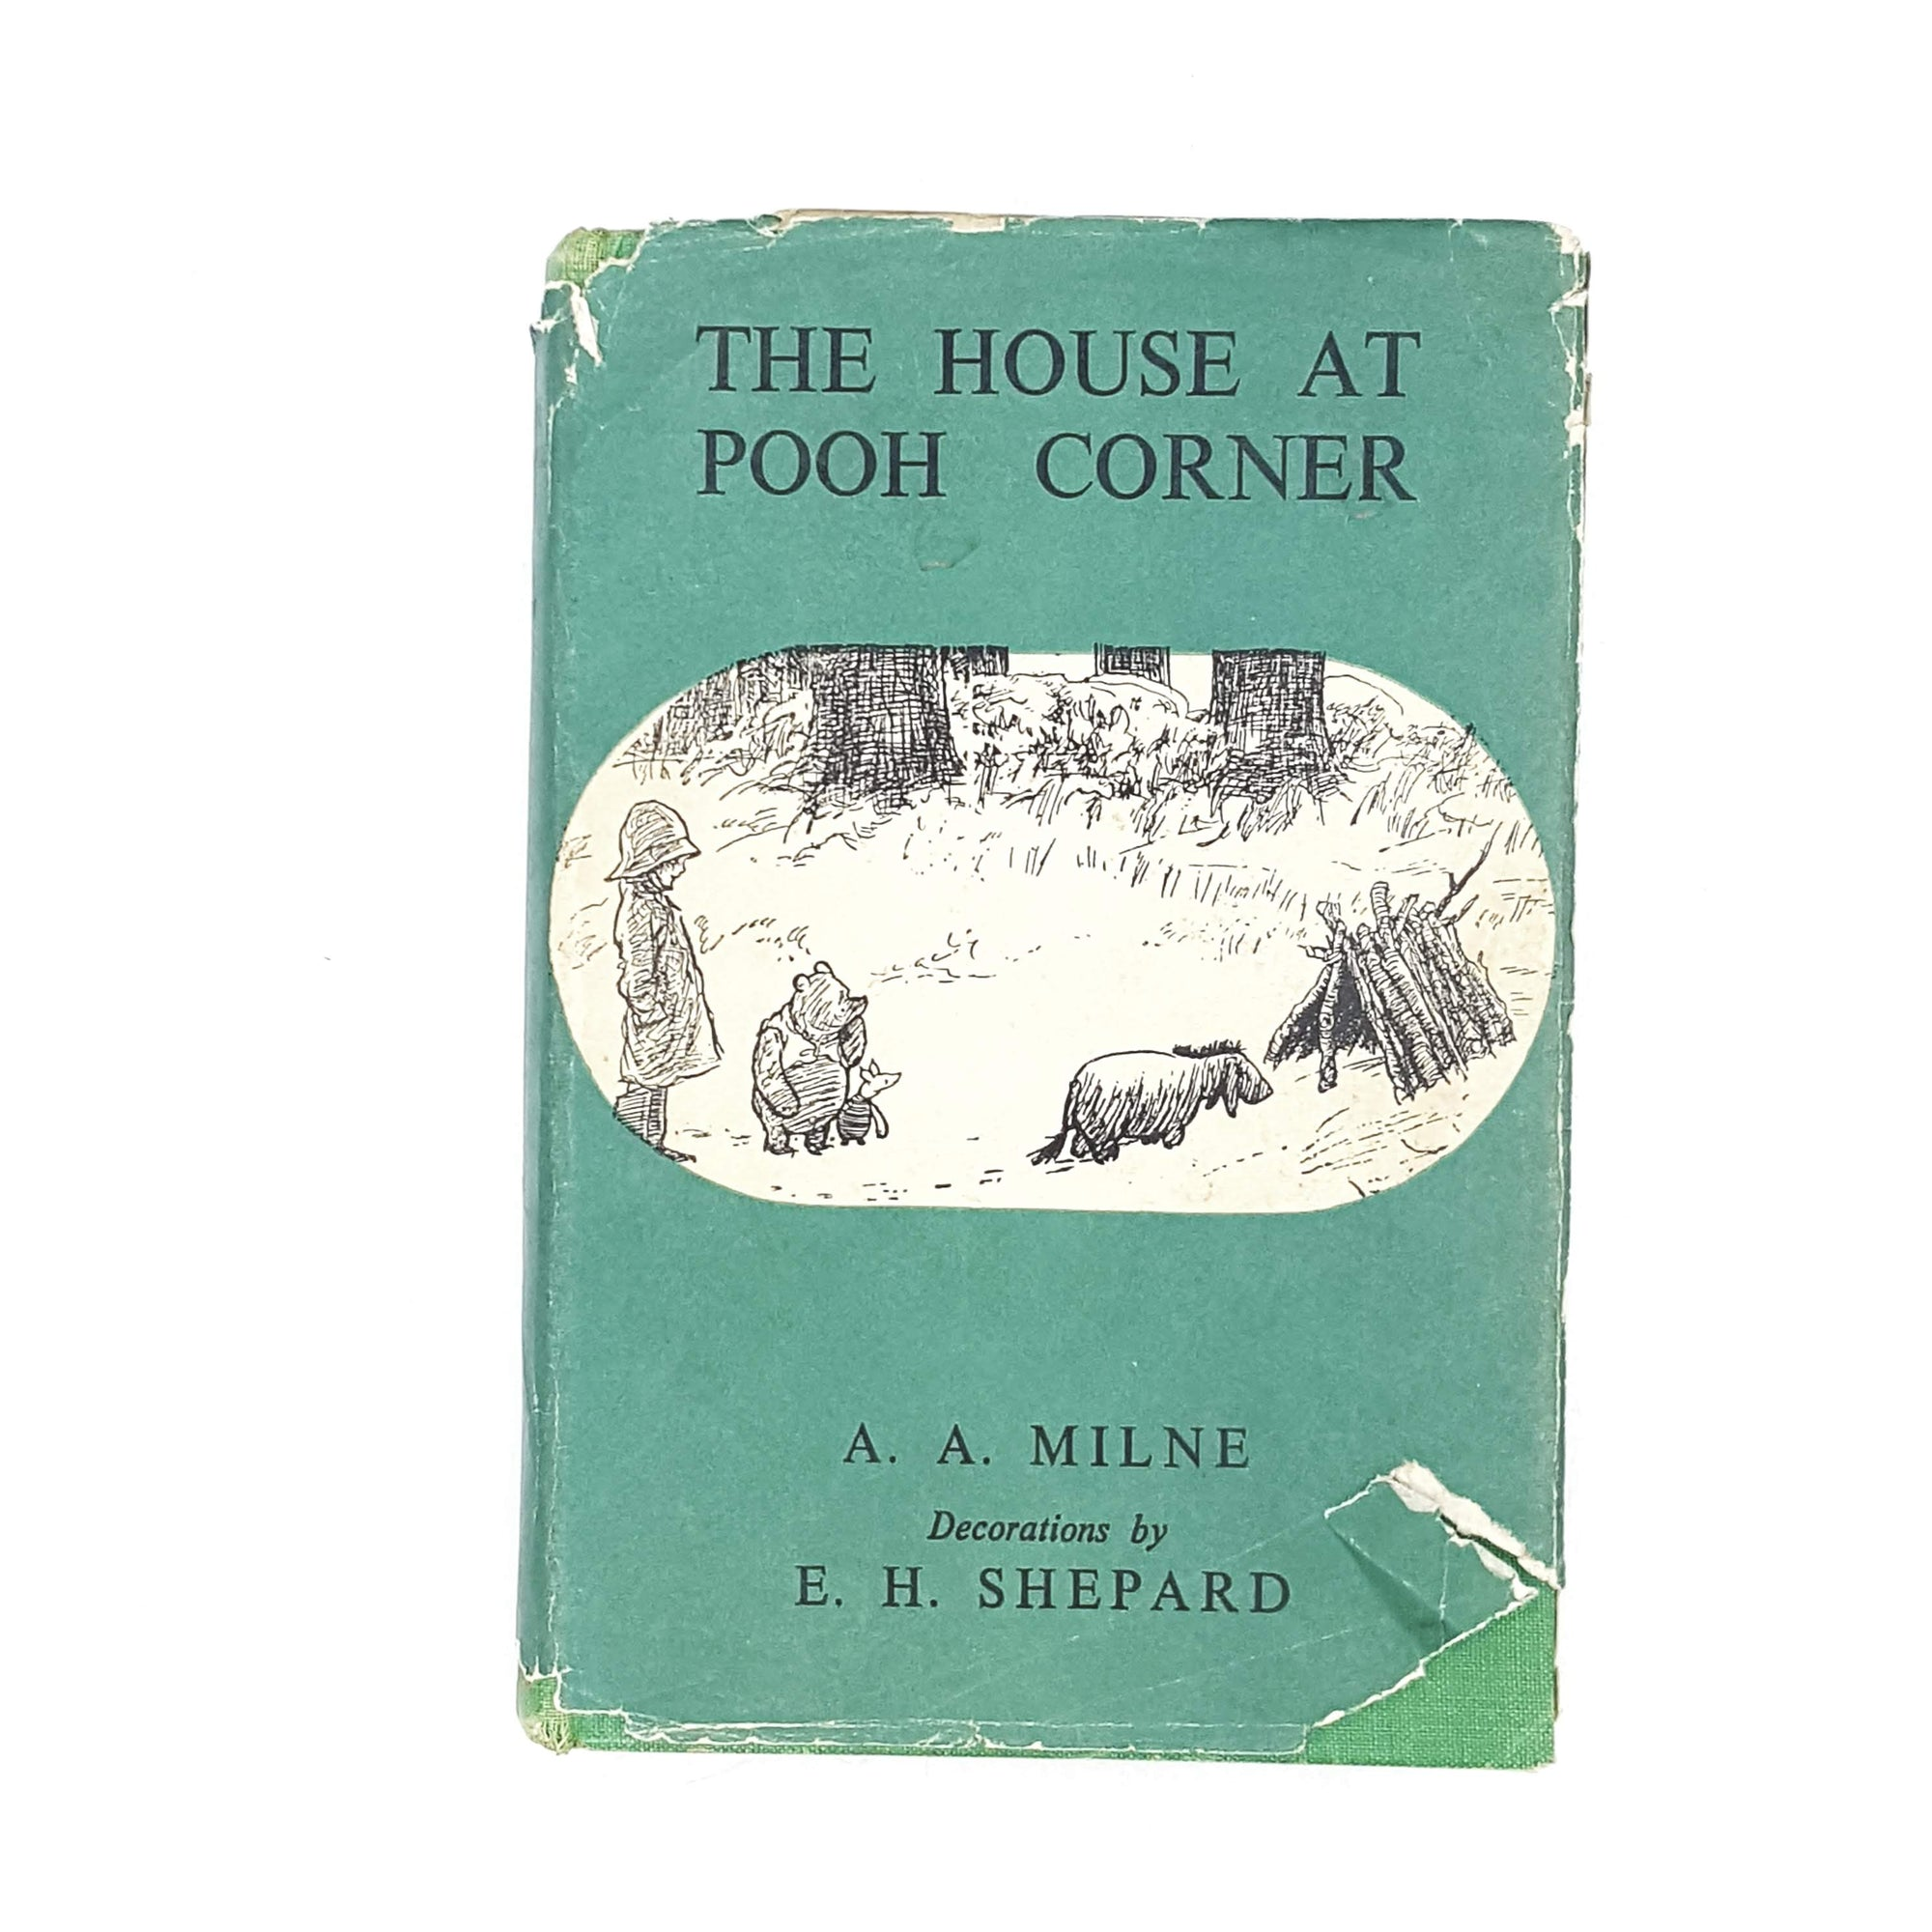 The House at Pooh Corner by A. L. Milne 1958